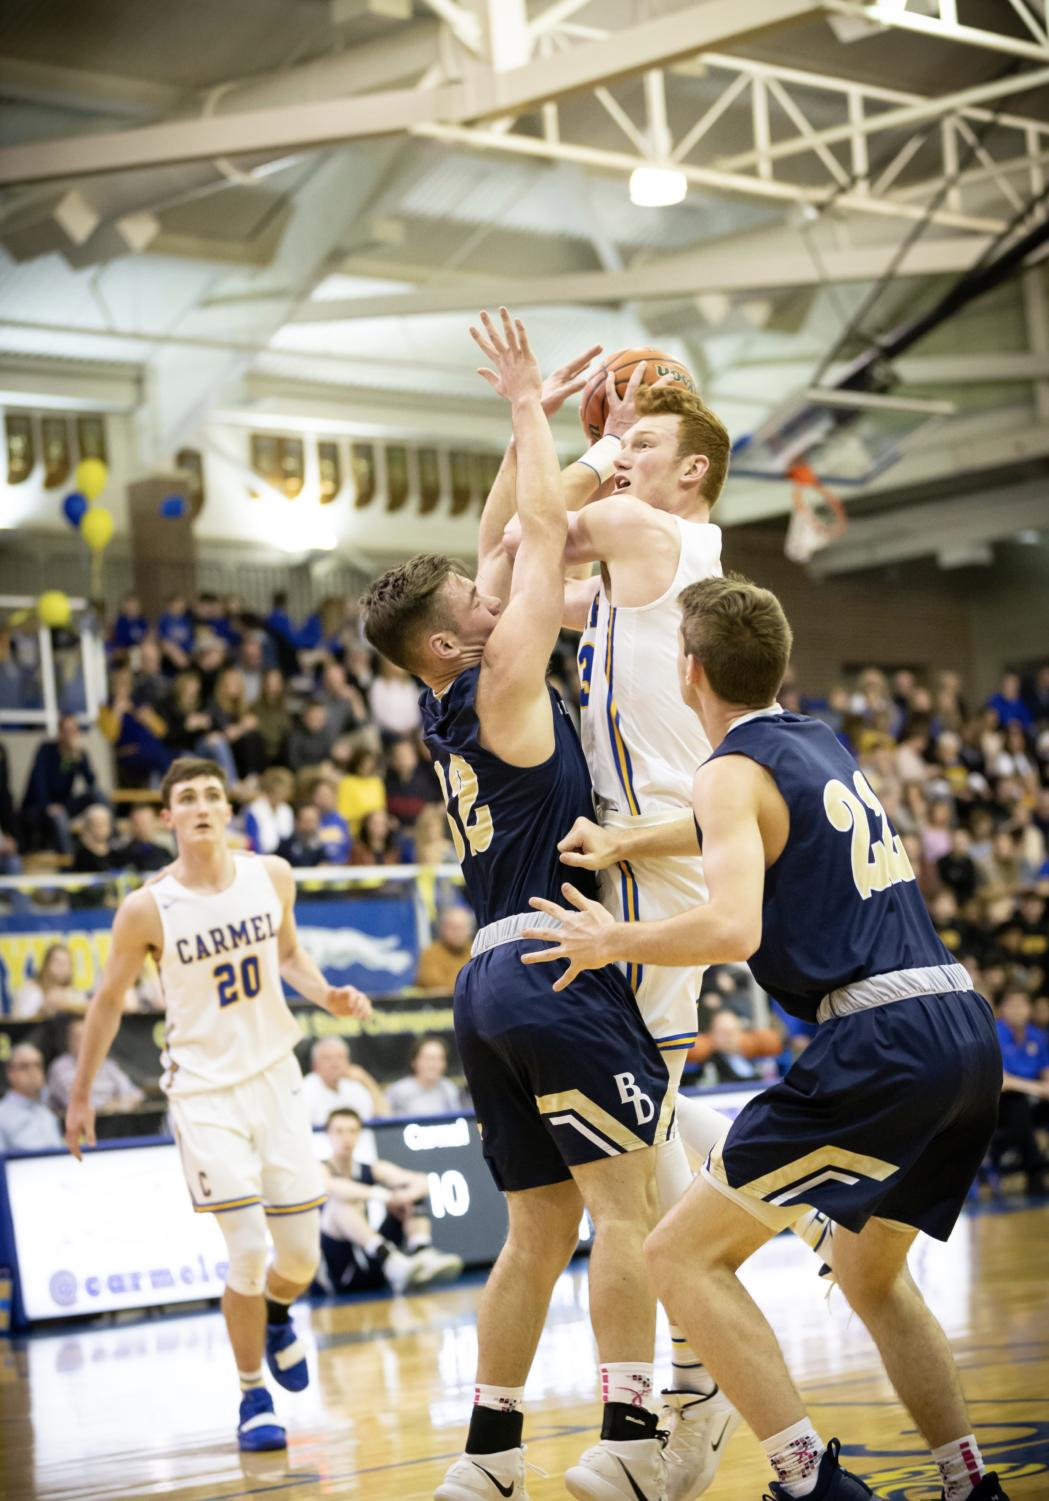 A+Foot+Above+The+Rest%3A%0AJohn+Micheal+Mulloy%2C+varsity+basketball+player+and+senior%2C+holds+the+ball+before+attempting+a+layup+during+their+game+against+Fort+Wayne+Dwenger+High+School+on+February+20.+Mulloy+is+the+tallest+student+on+the+Carmel+High+School+basketball+team.+Mulloy+will+be+attending+Butler+University+for+basketball+in+the+fall+of+next+year.+